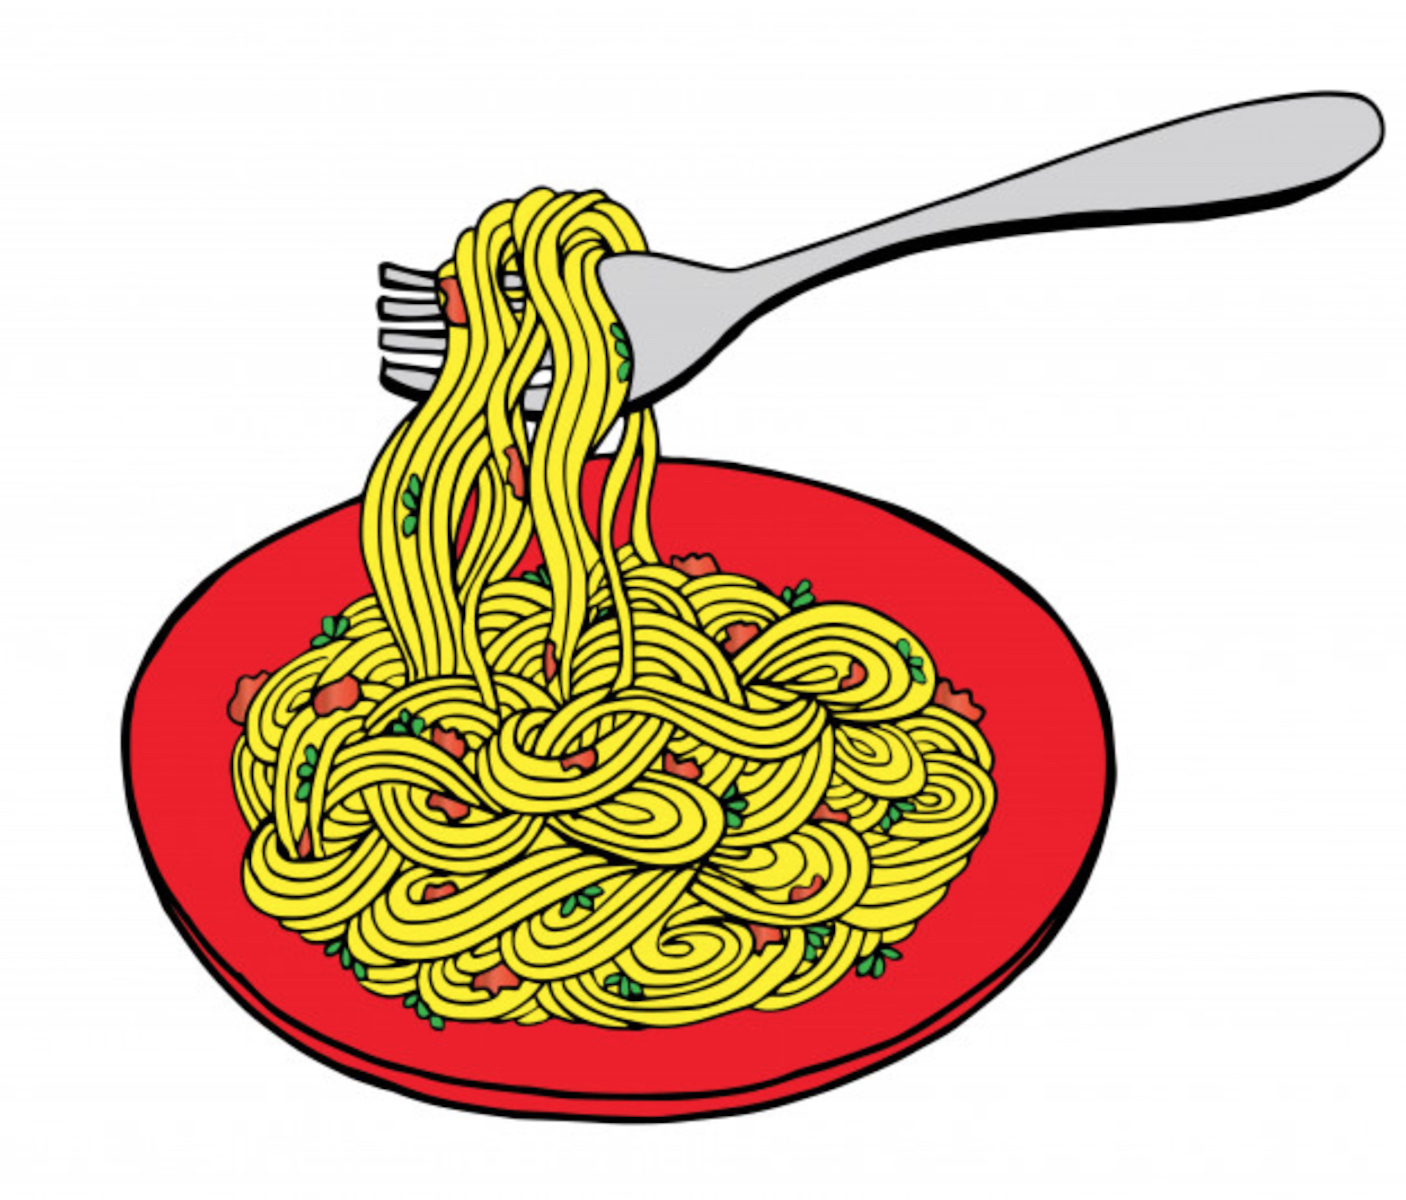 Drawing of spaghetti in a bowl with a fork